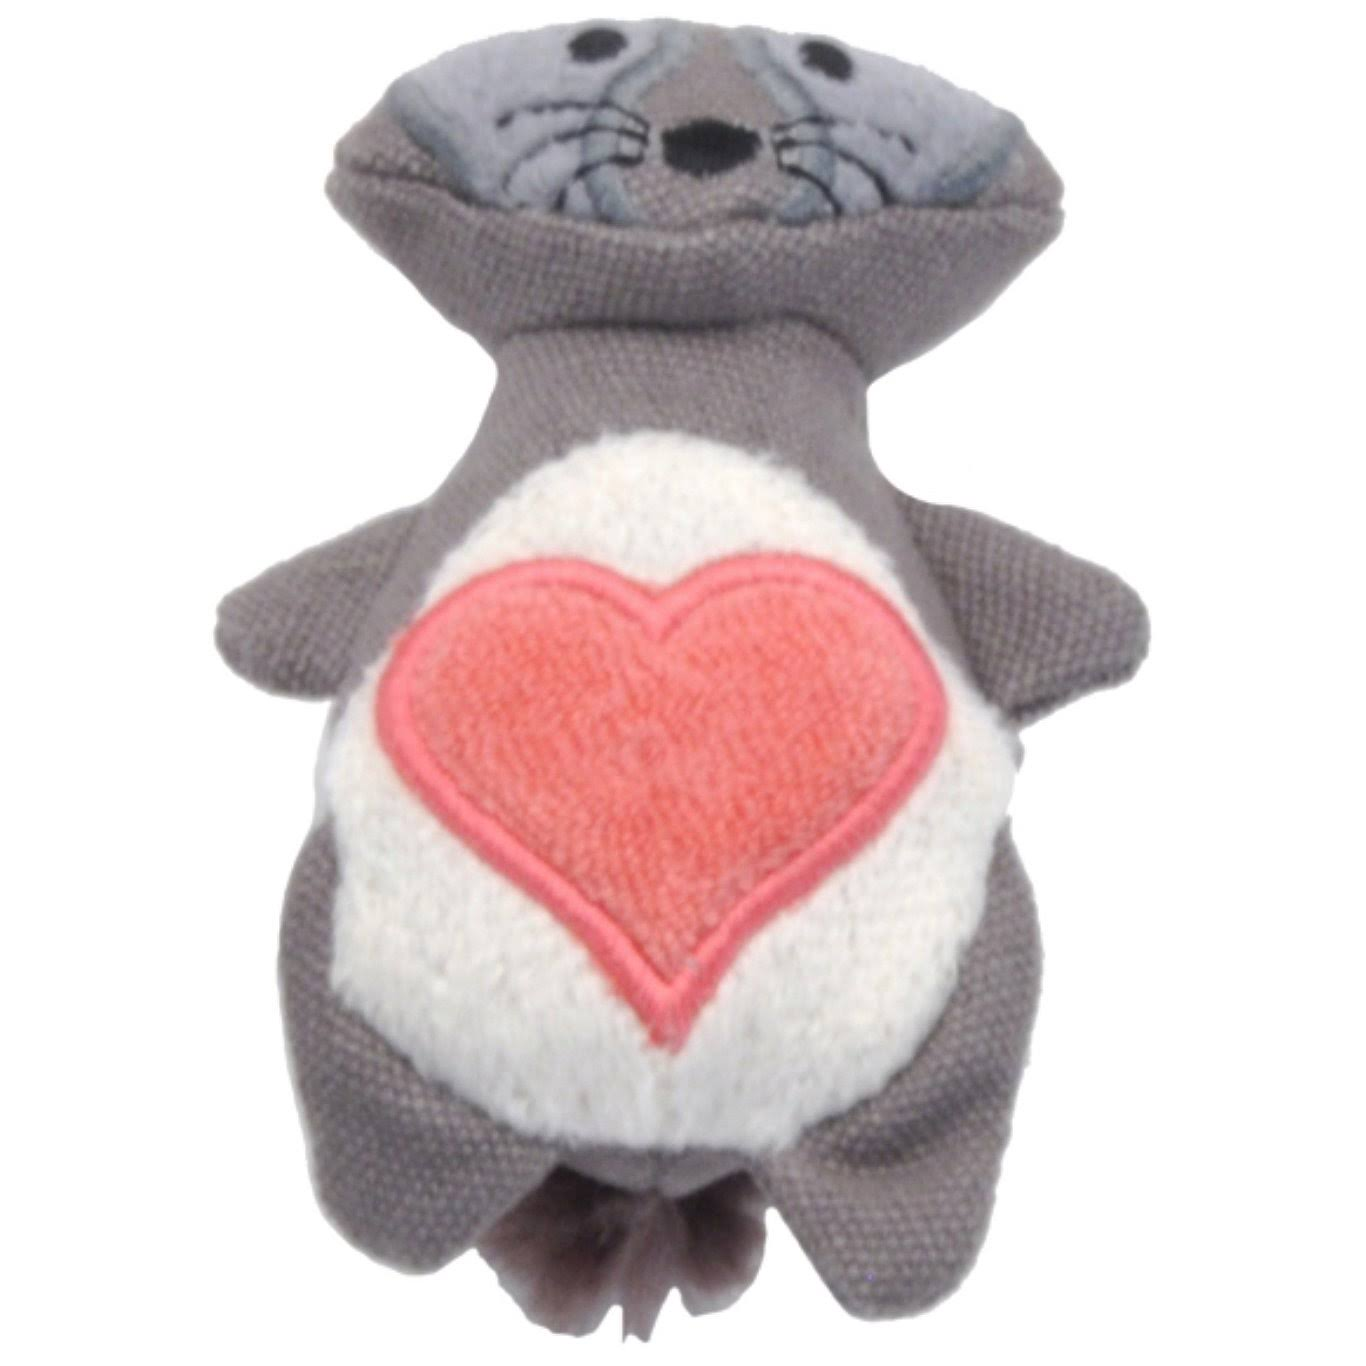 Turbo Scent Locker Heart Plush Animal Cat Toy & Catnip Spray, Raccoon